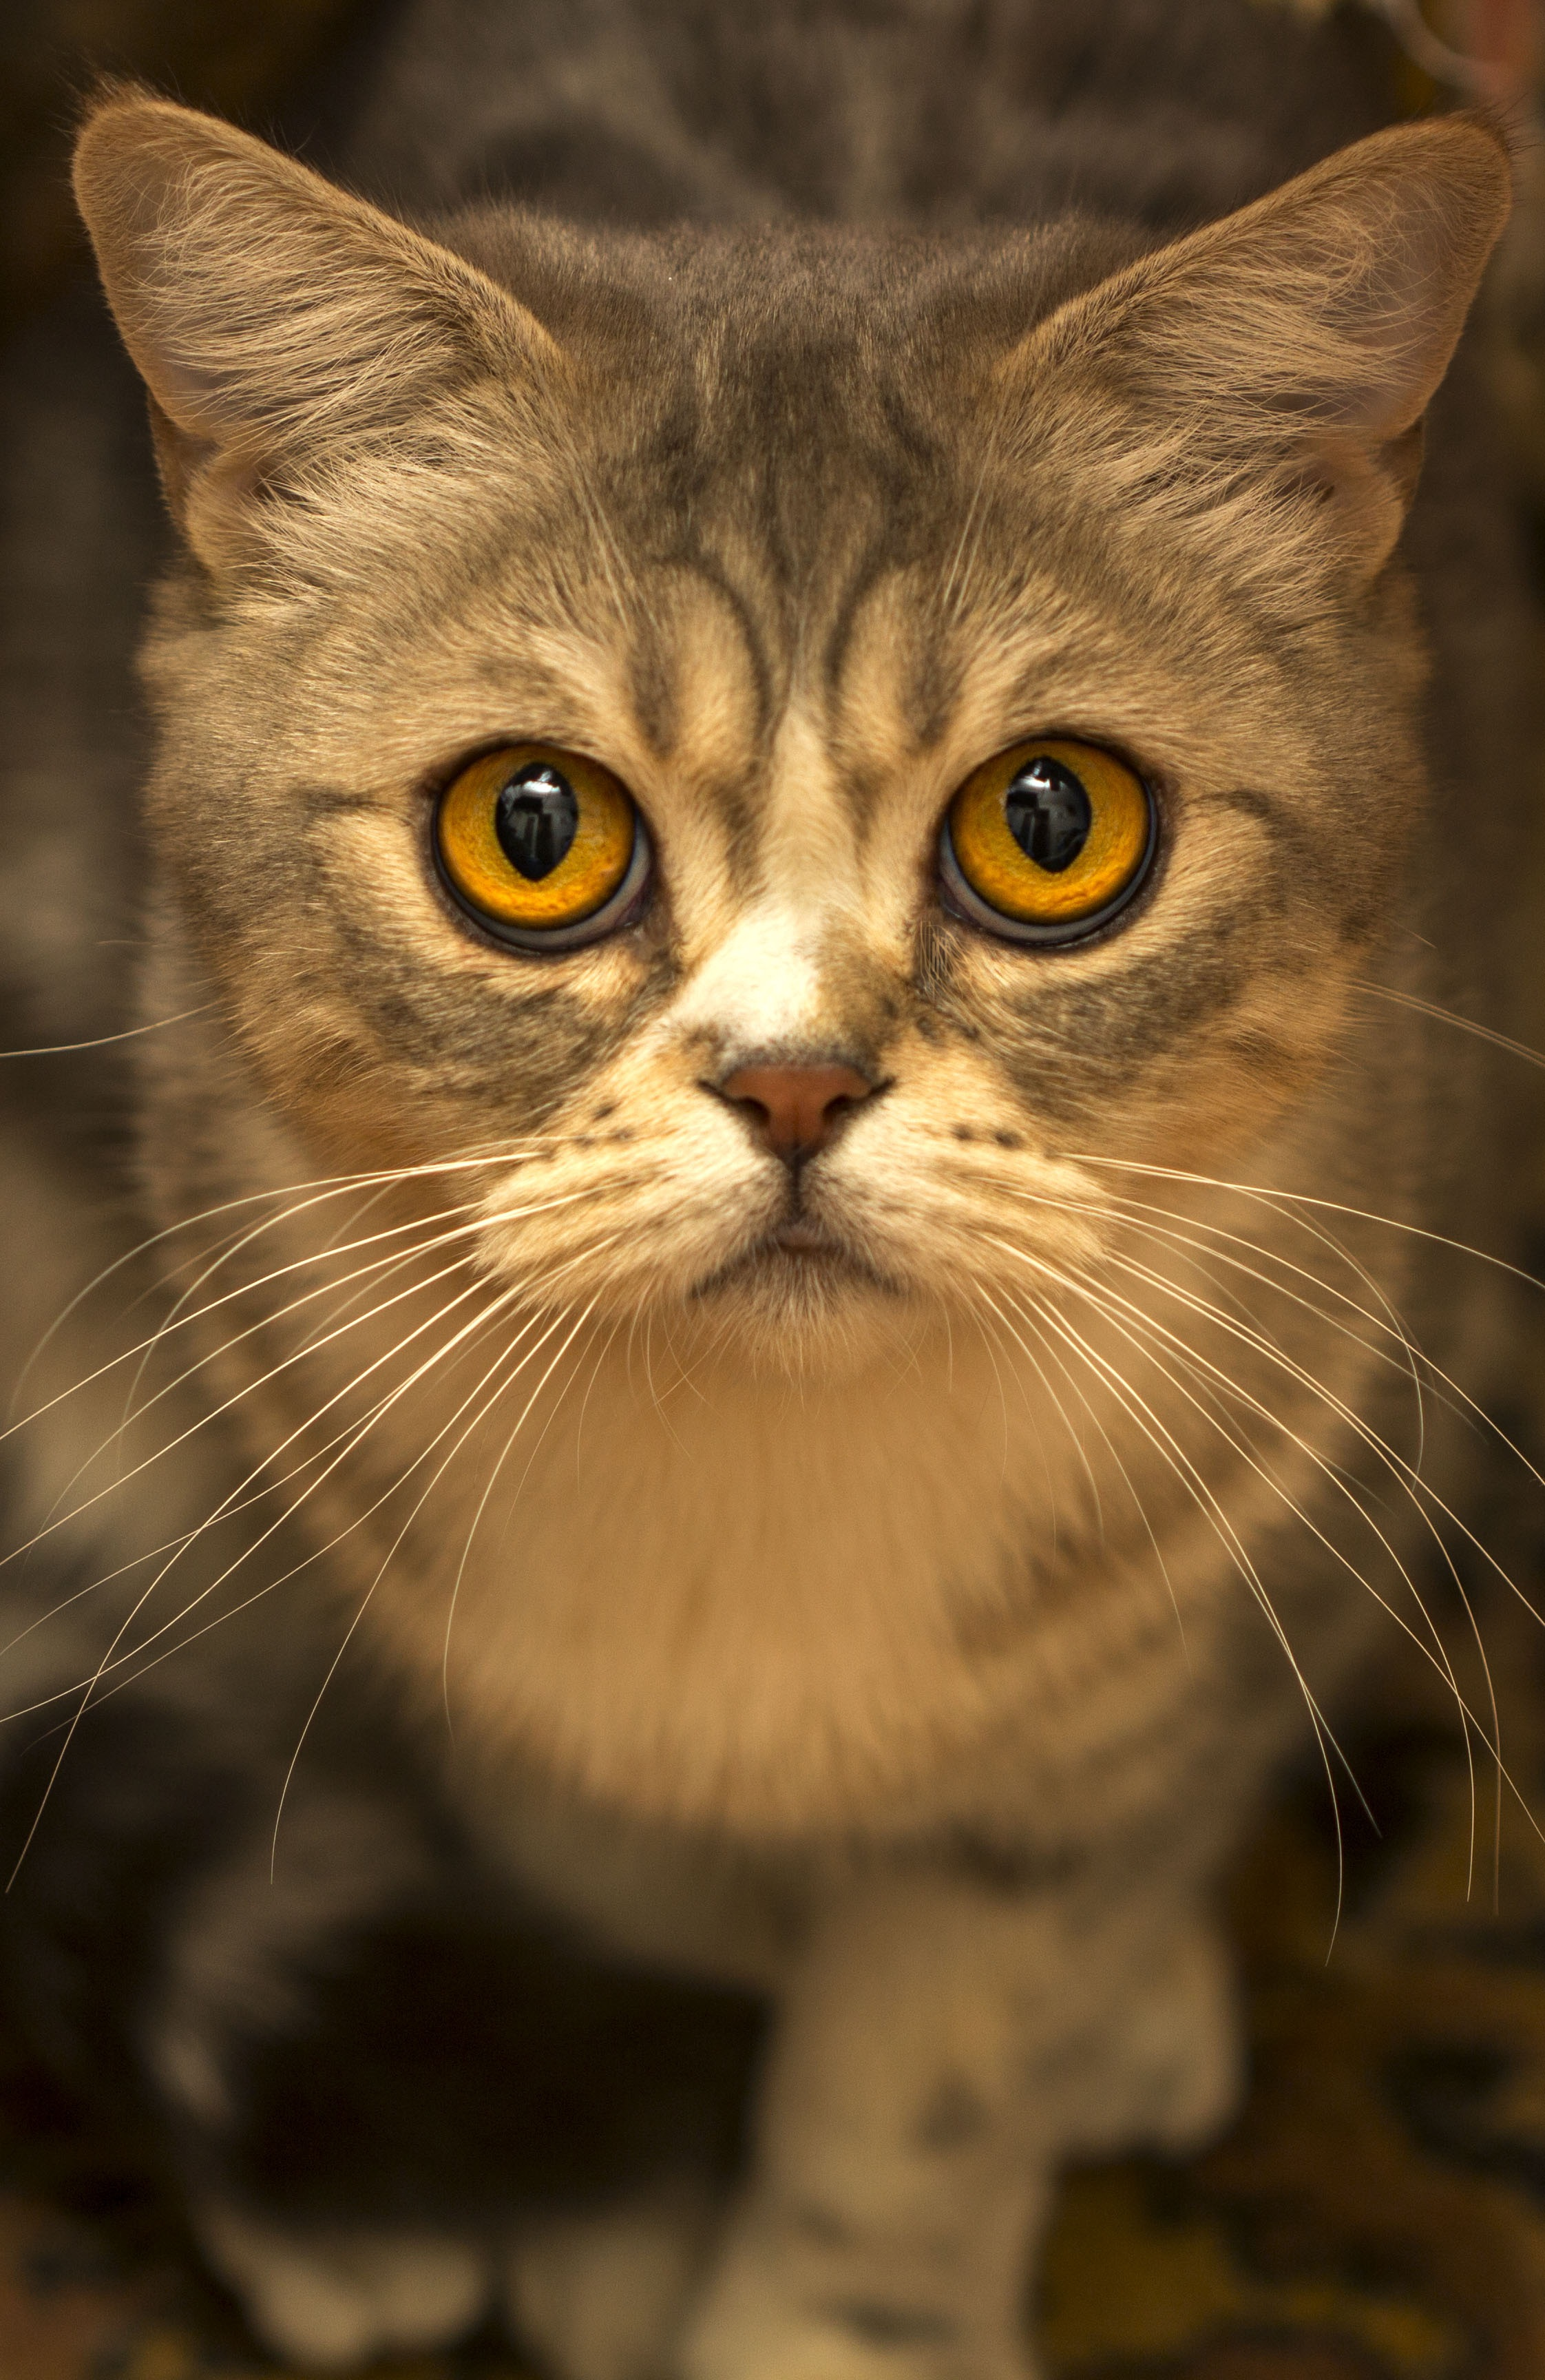 Brown Tabby Cat Close Up Photo · Free Stock Photo